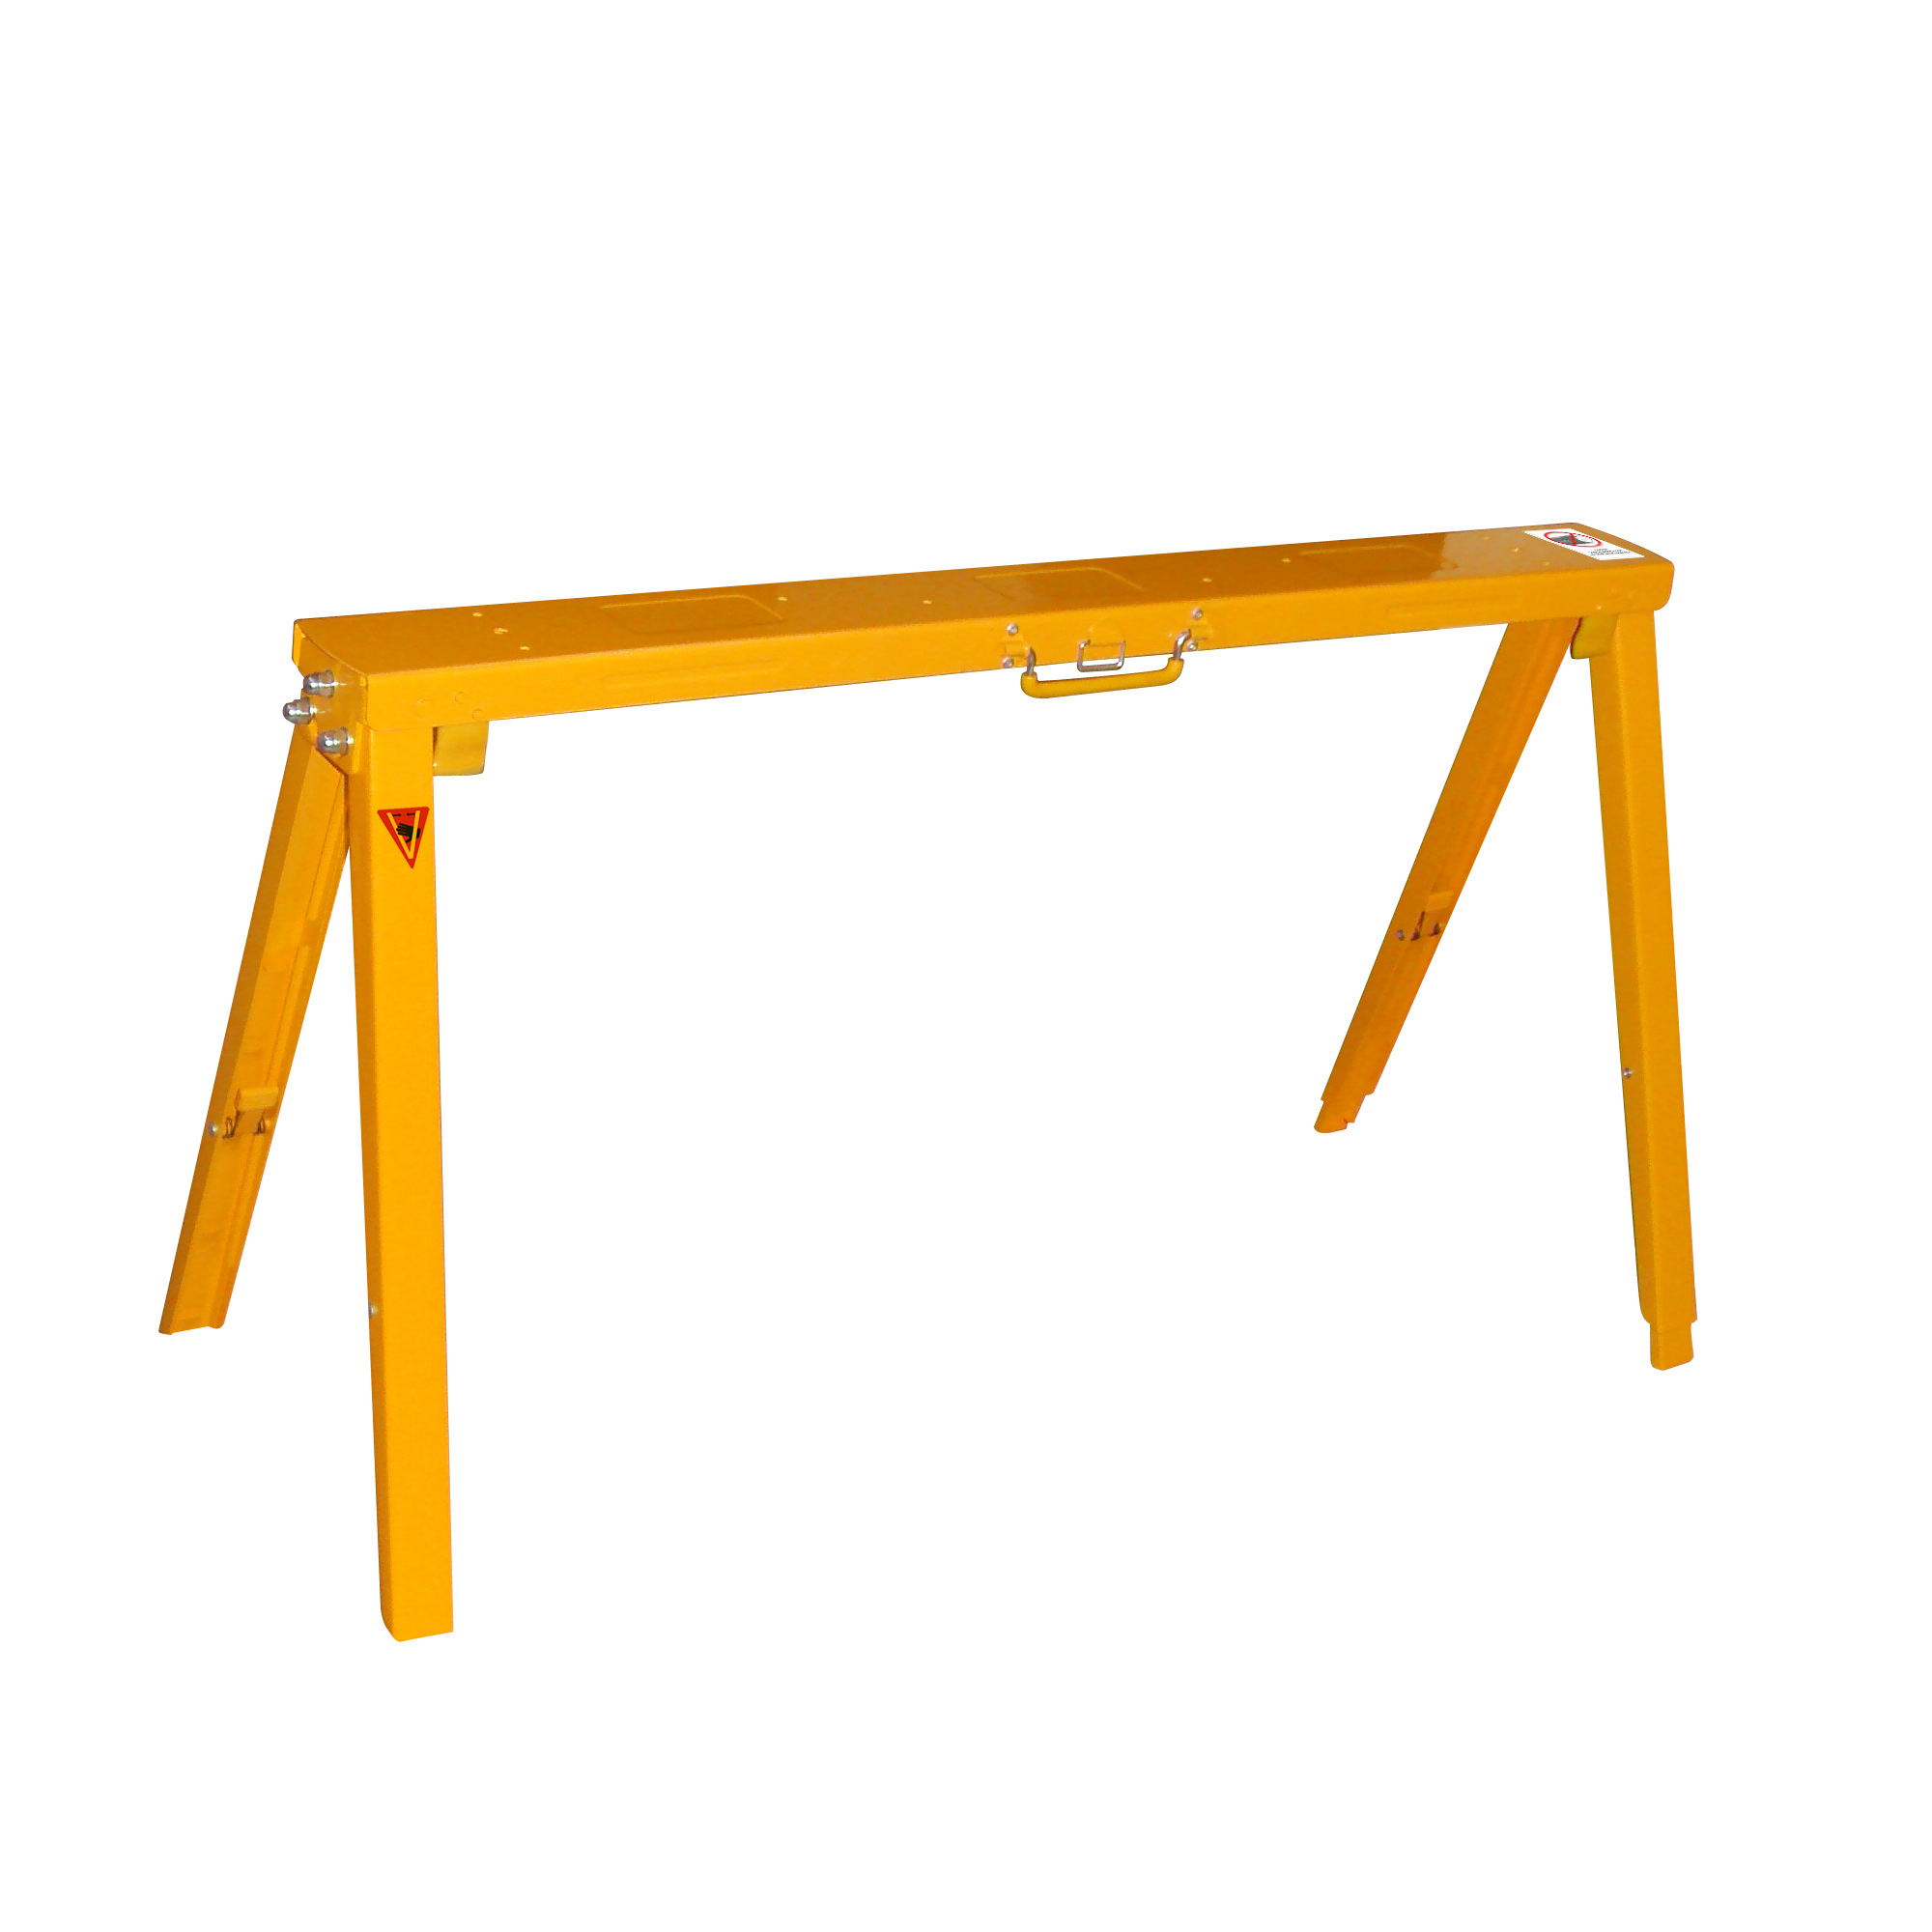 FRONTIER Steel Adjustable Height And Folding Sawhorse